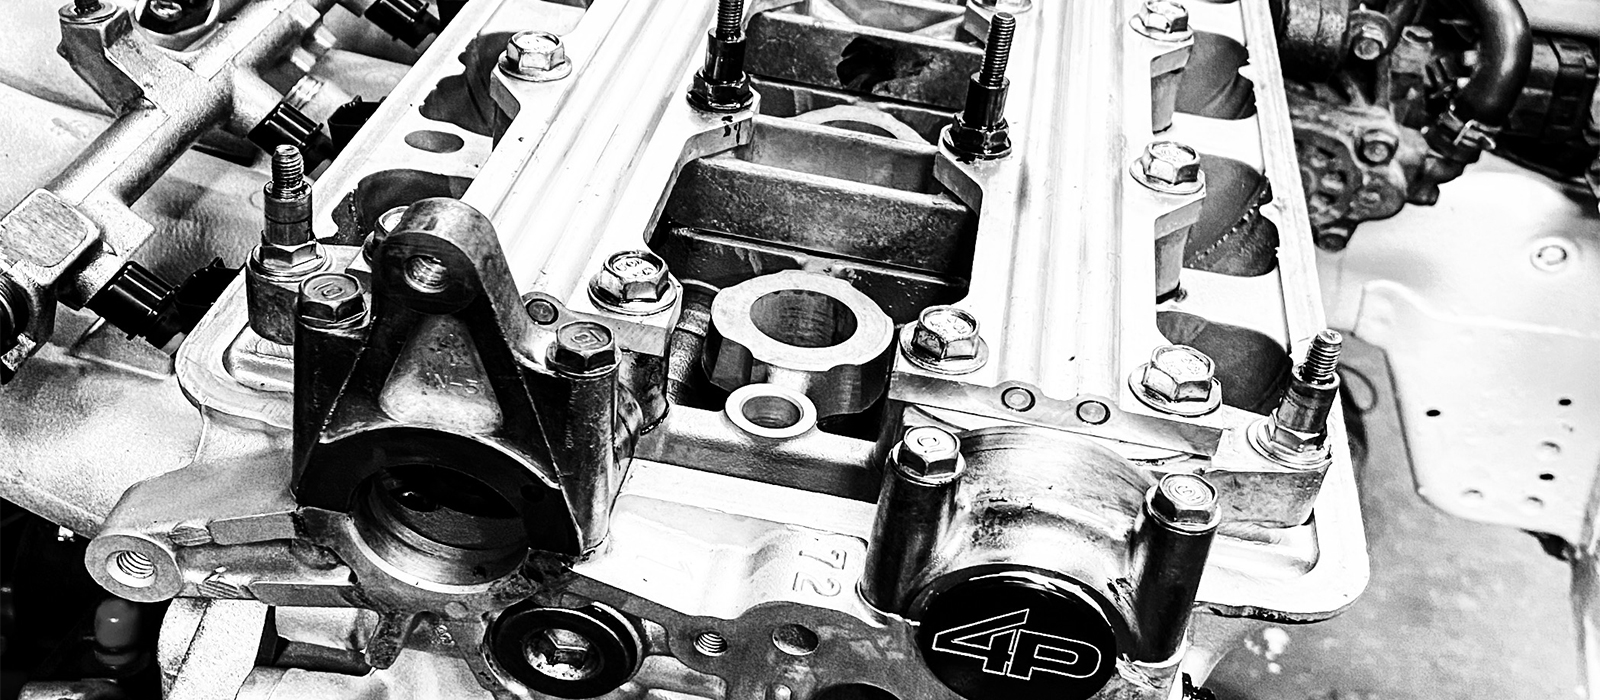 engine in black and white